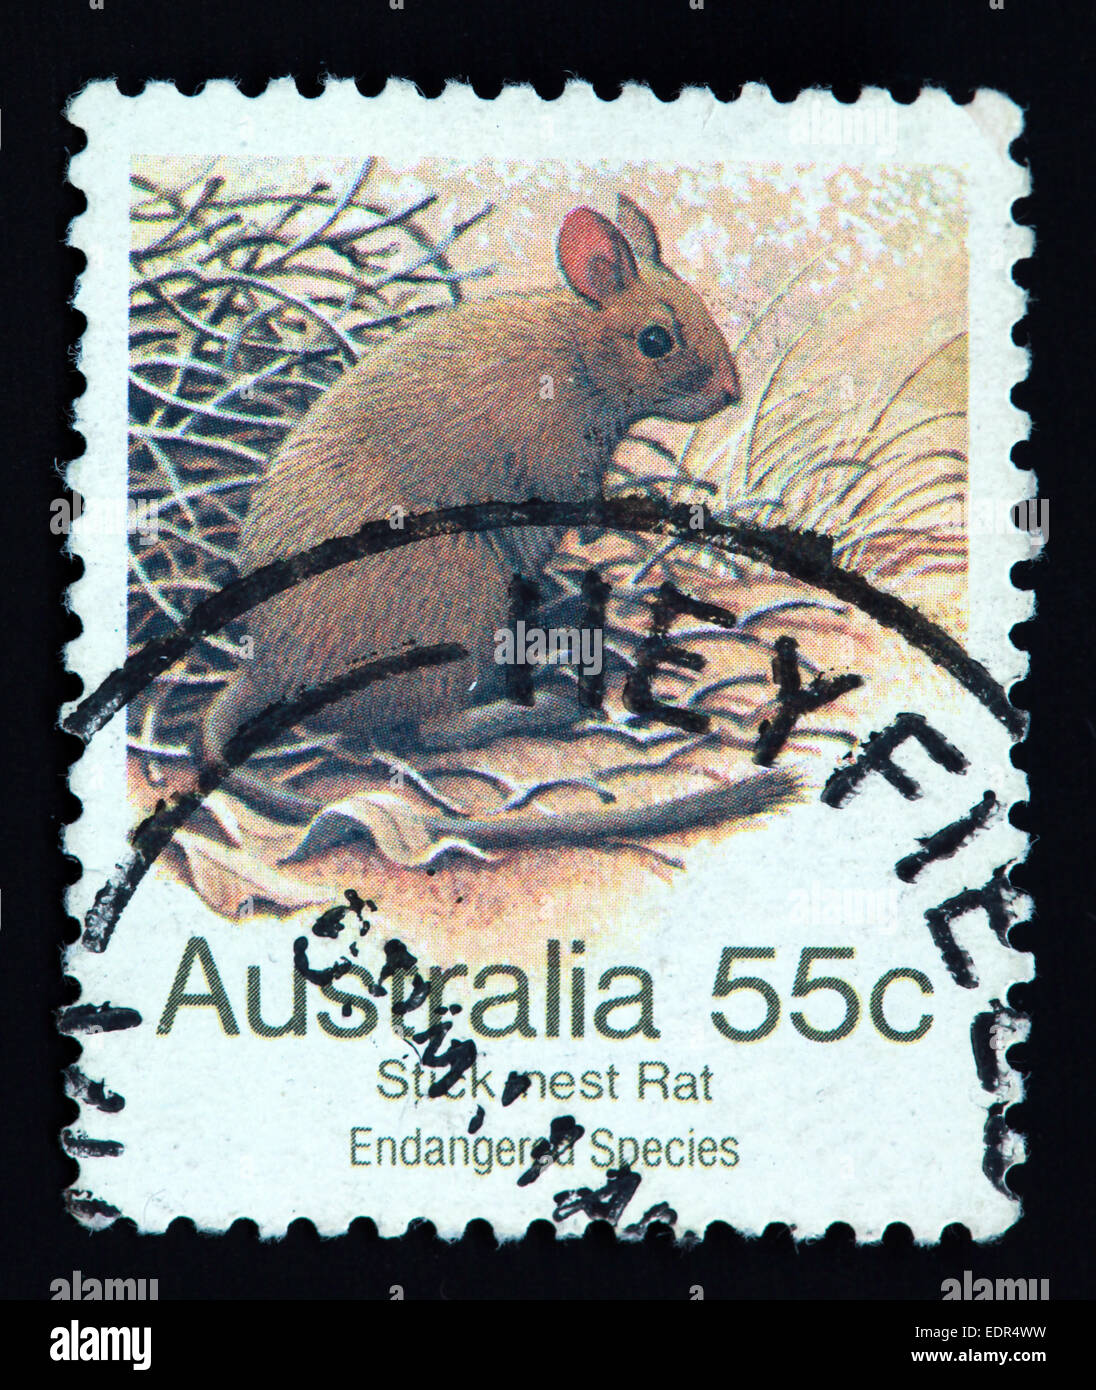 Used and postmarked Australia / Austrailian Stamp Stick Nest Rat Endangered Species 55c - Stock Image